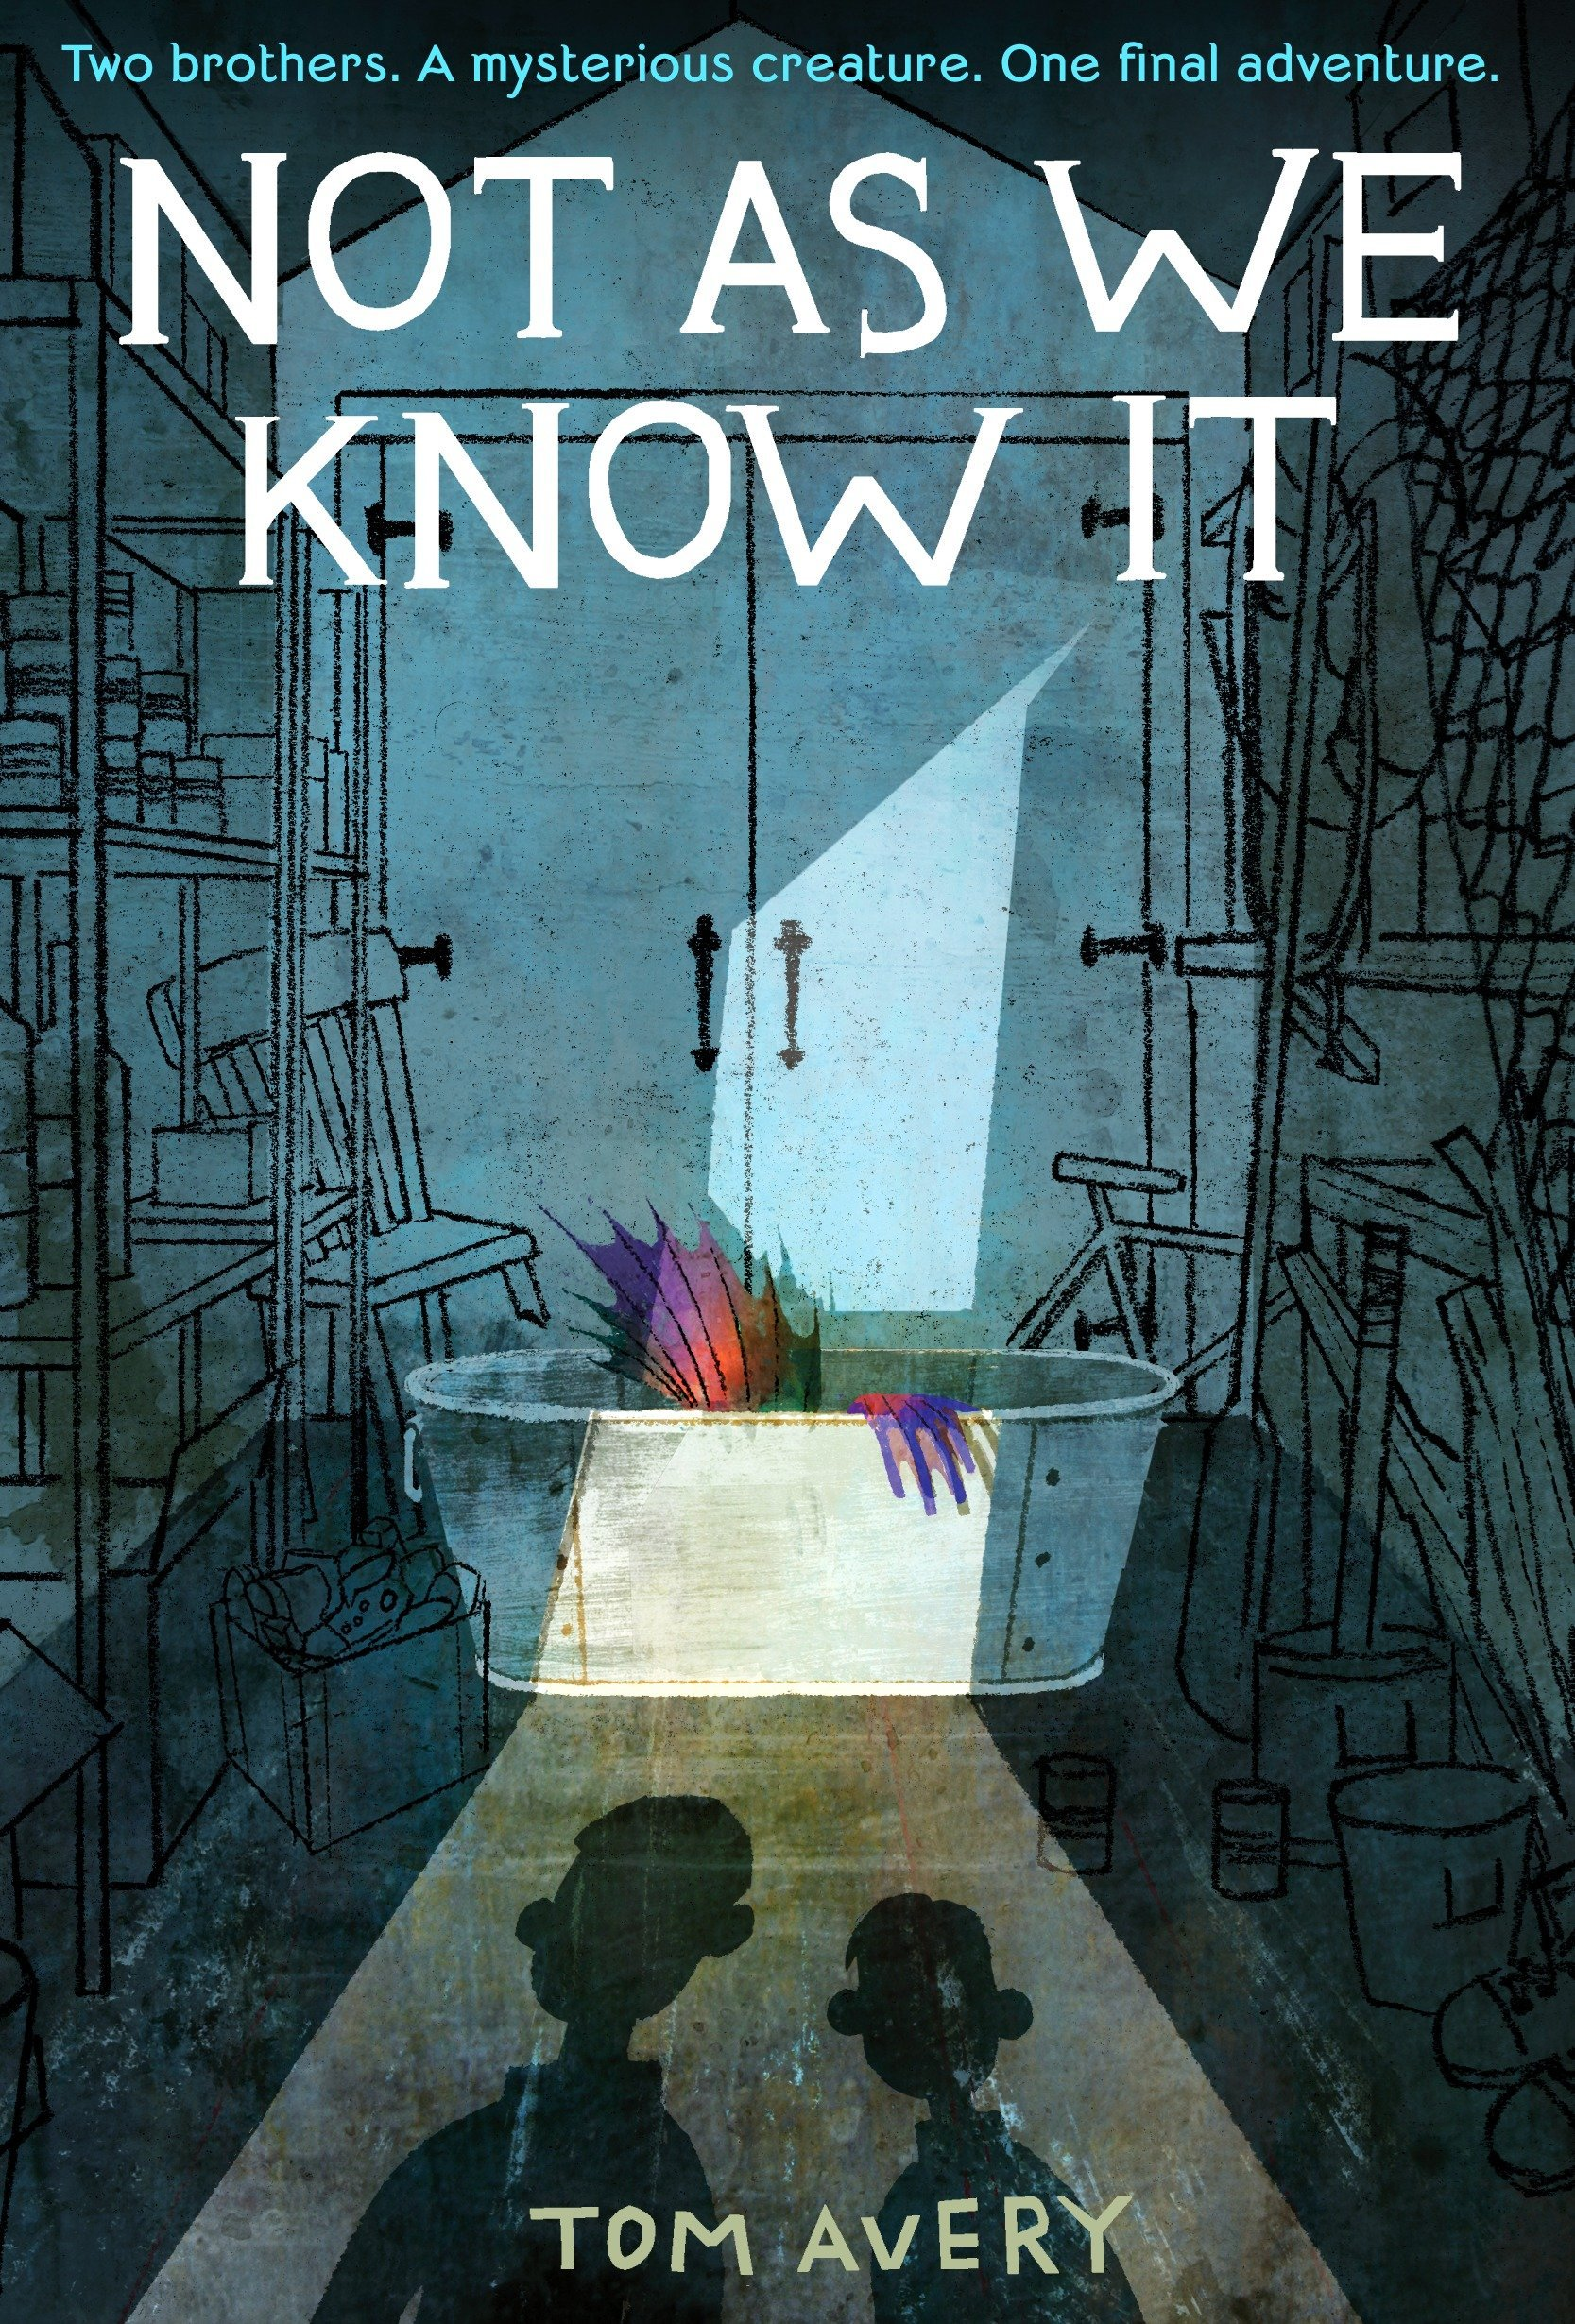 Image result for Not as we know it book